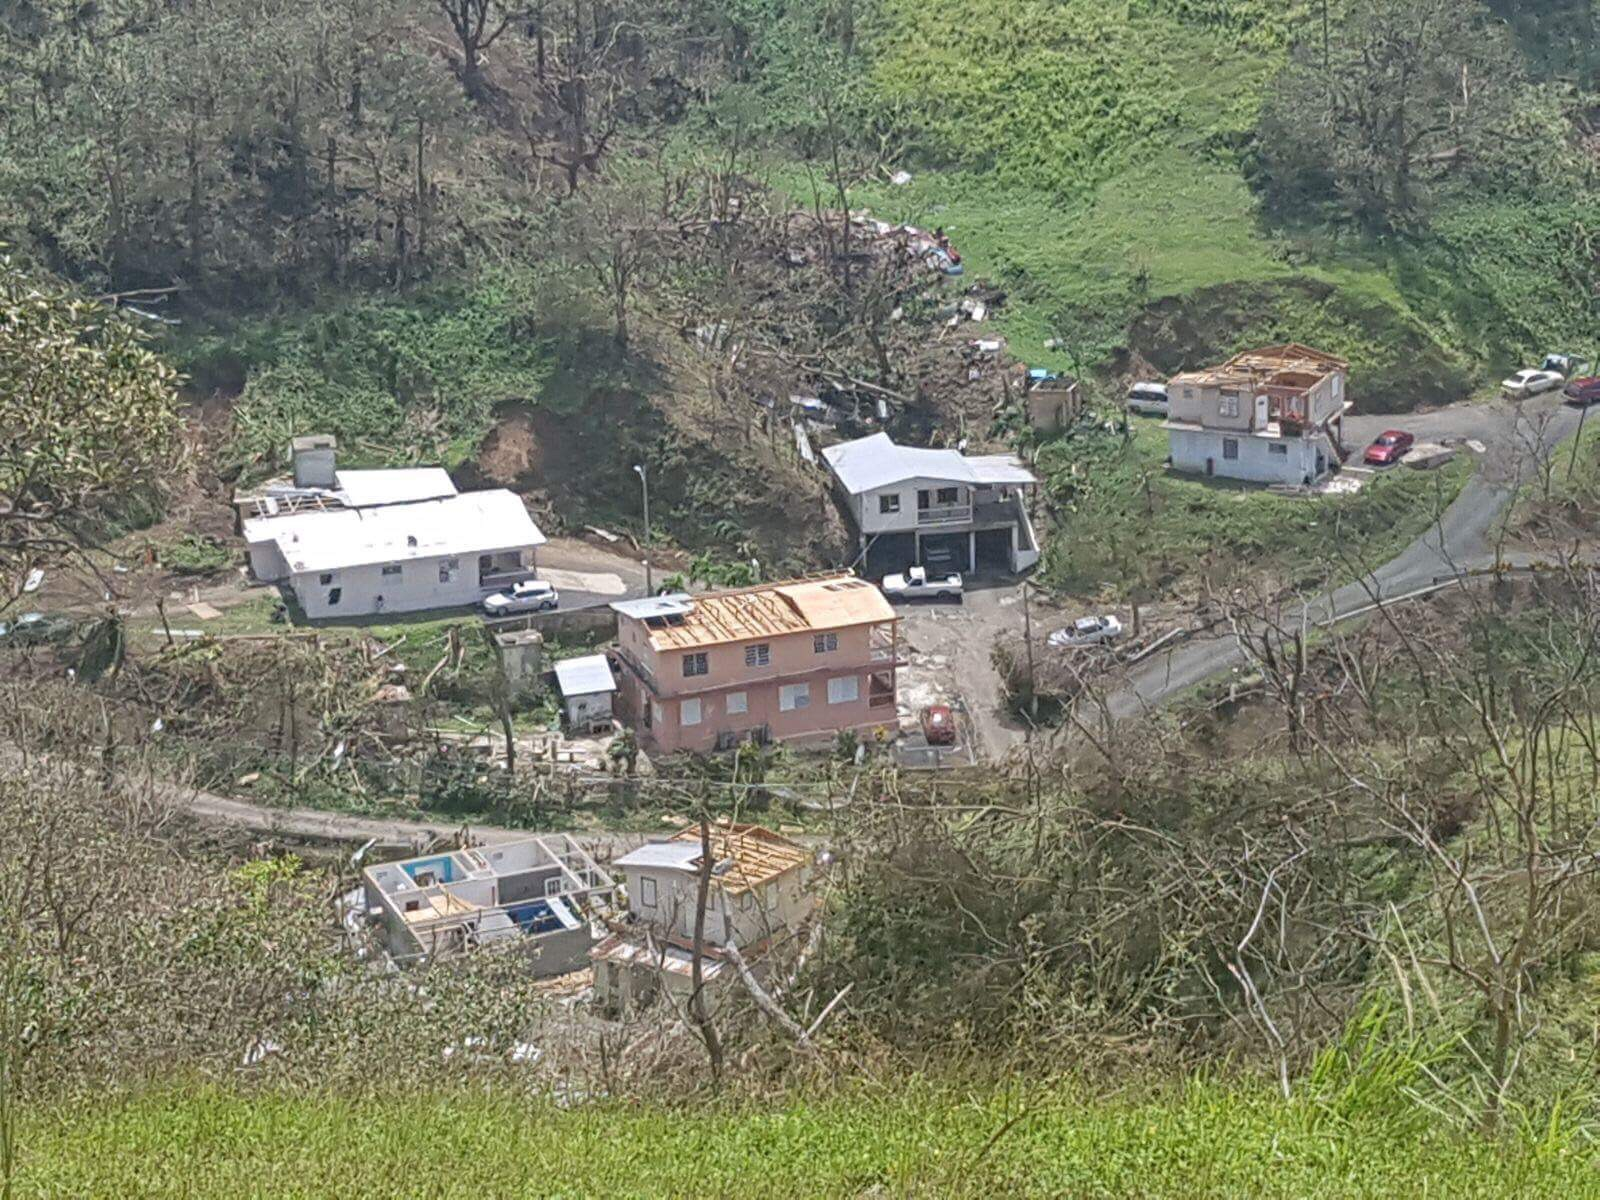 Damaged homes in puerto rico